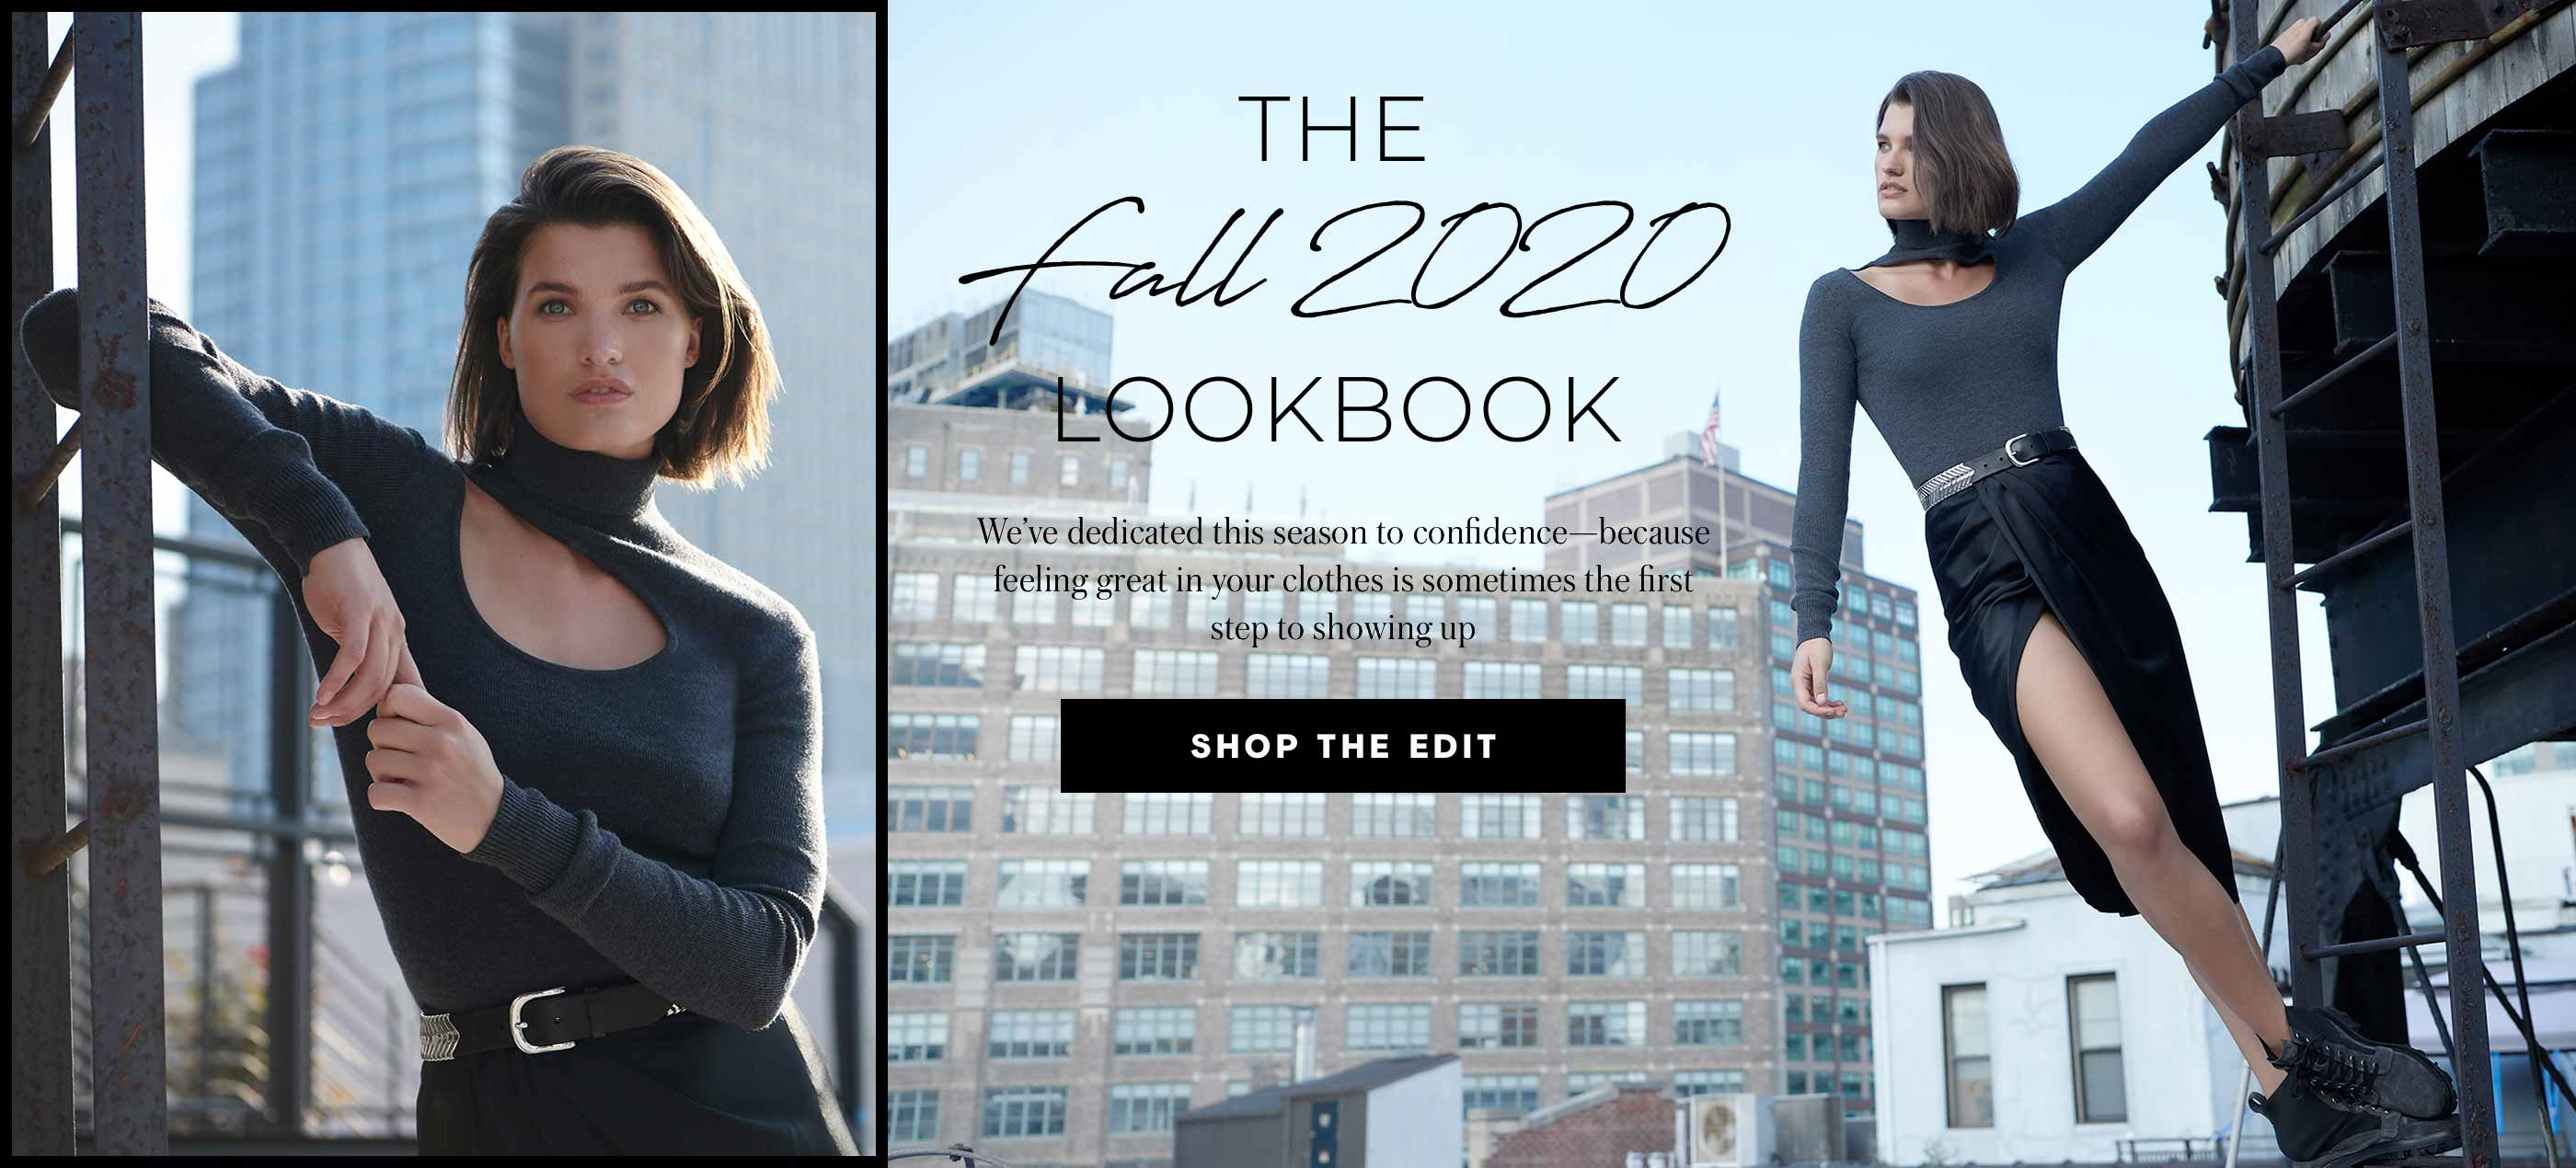 """The Fall 2020 Lookbook We've dedicated this season to confidence—because feeling great in your clothes is sometimes the first step to showing up """